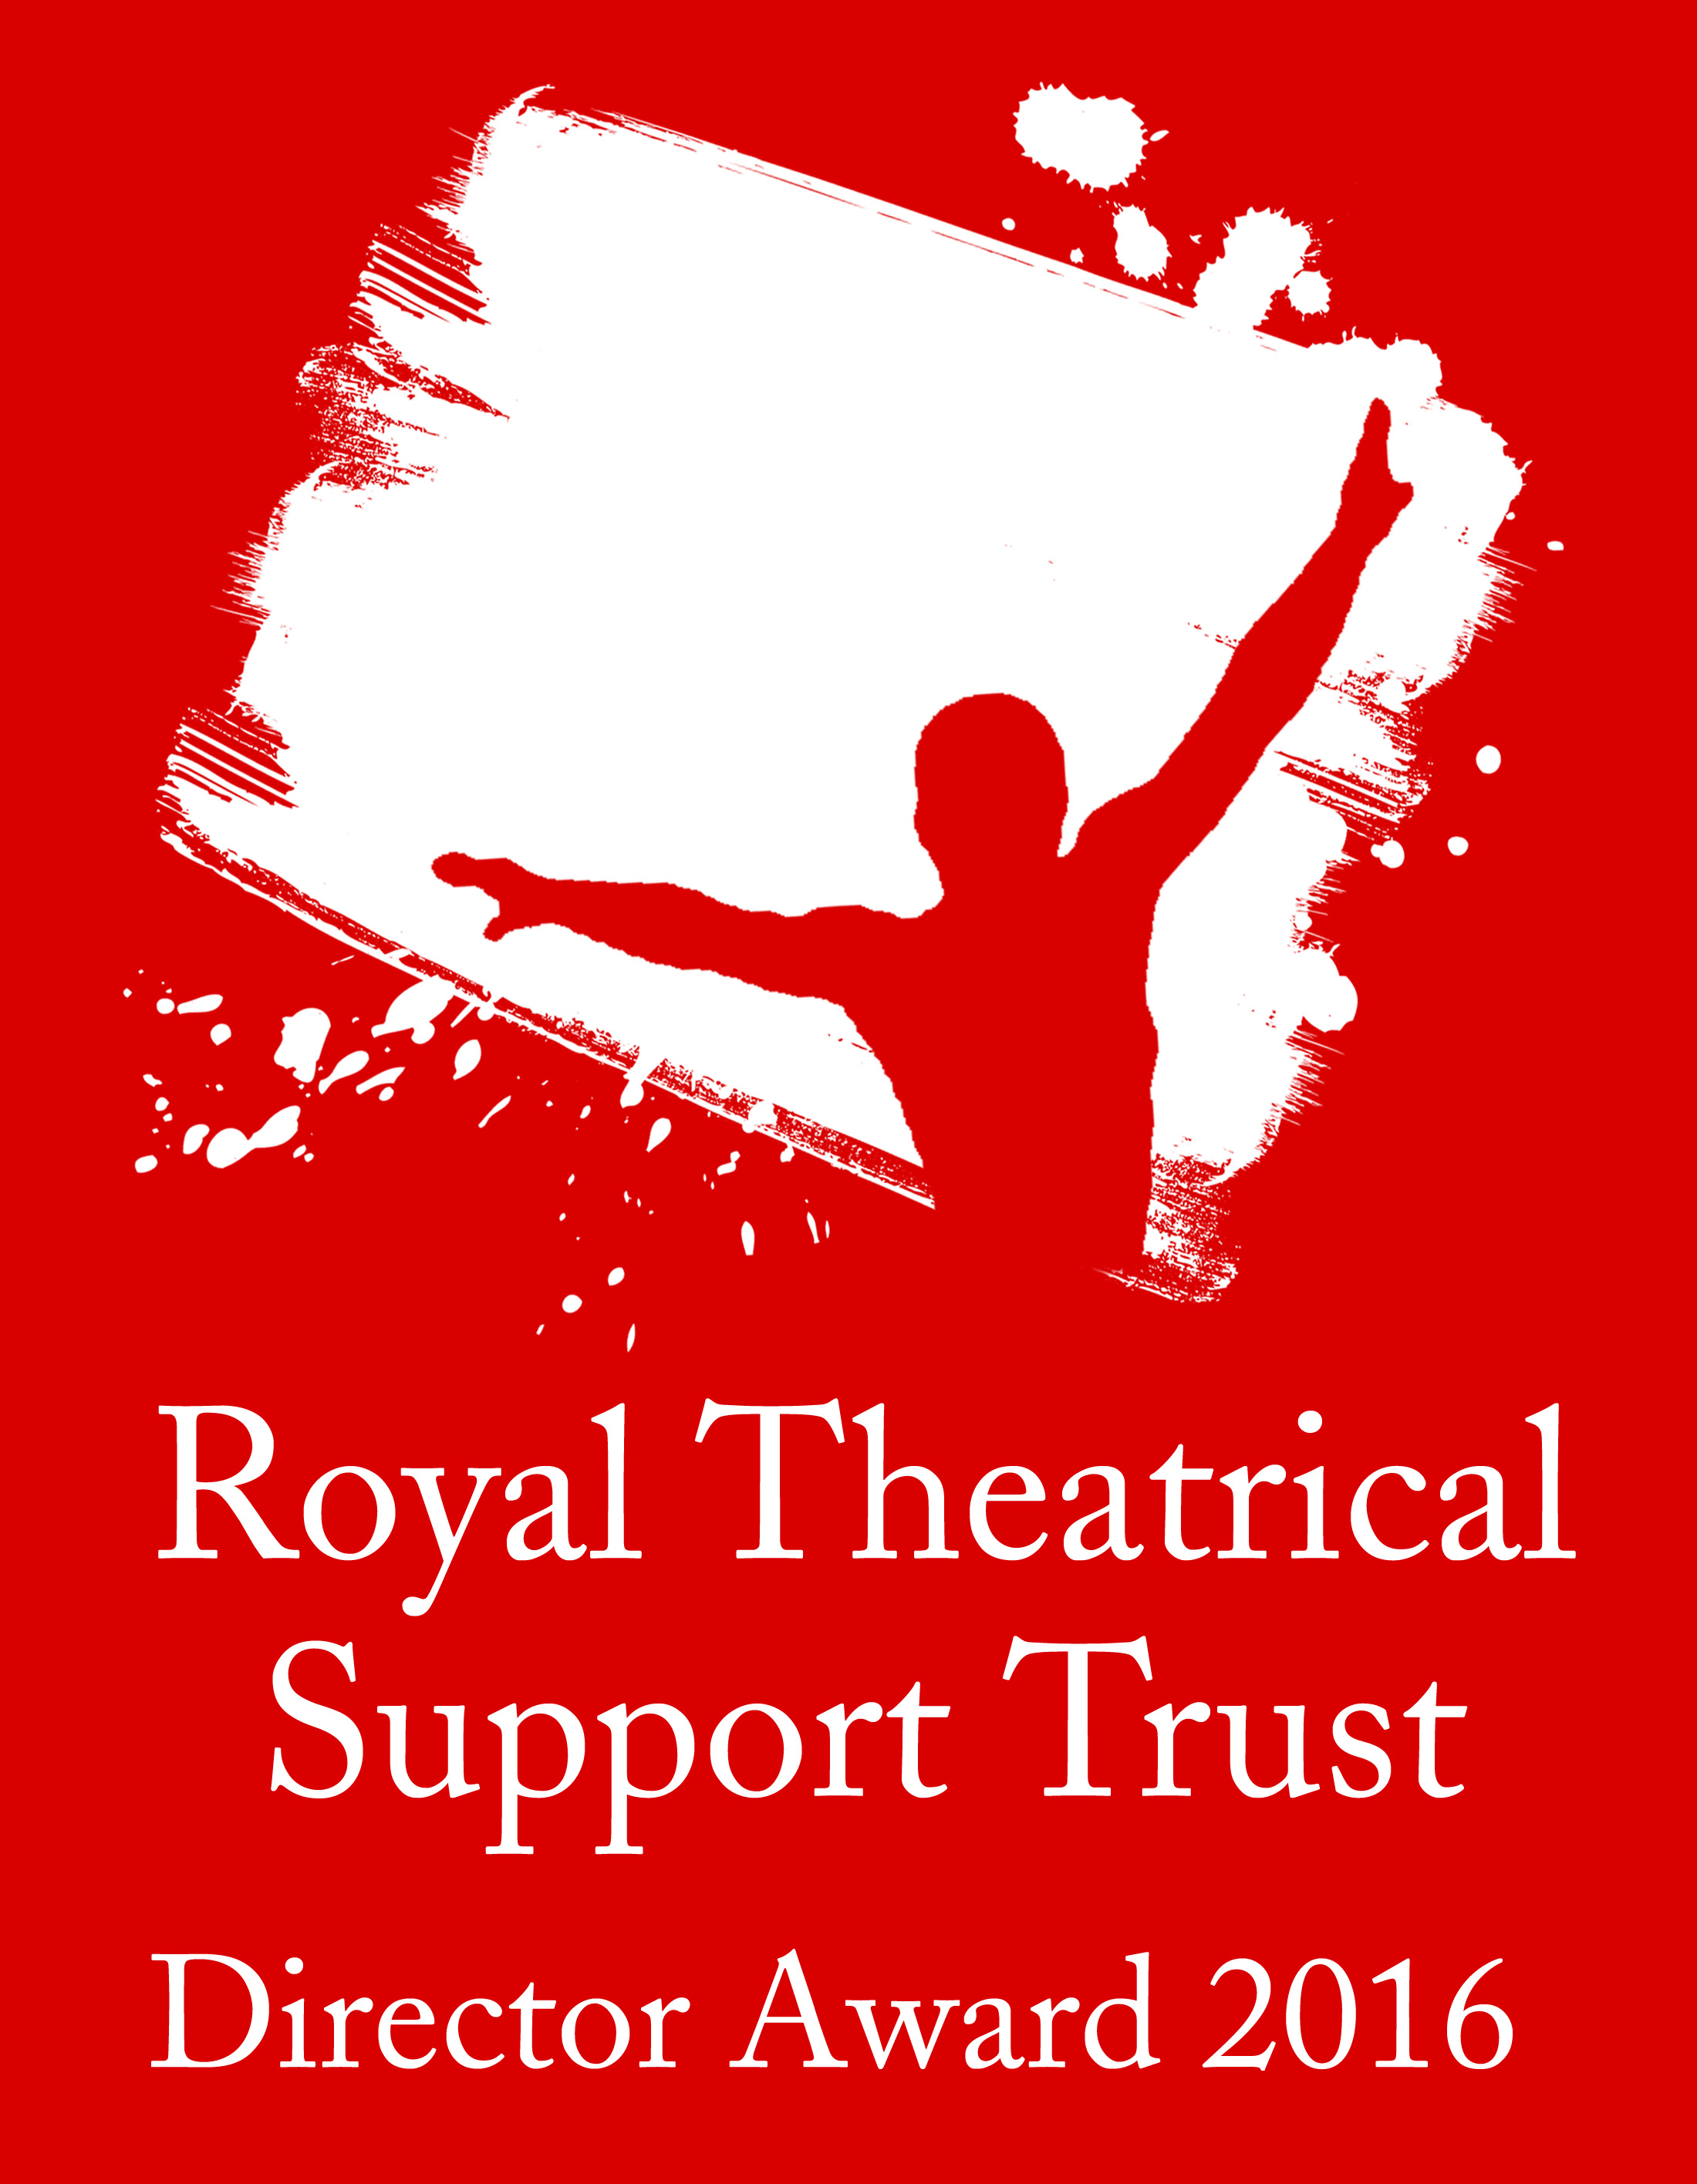 Royal Theatrical Support Trust Director Award launched with Sheffield Theatres